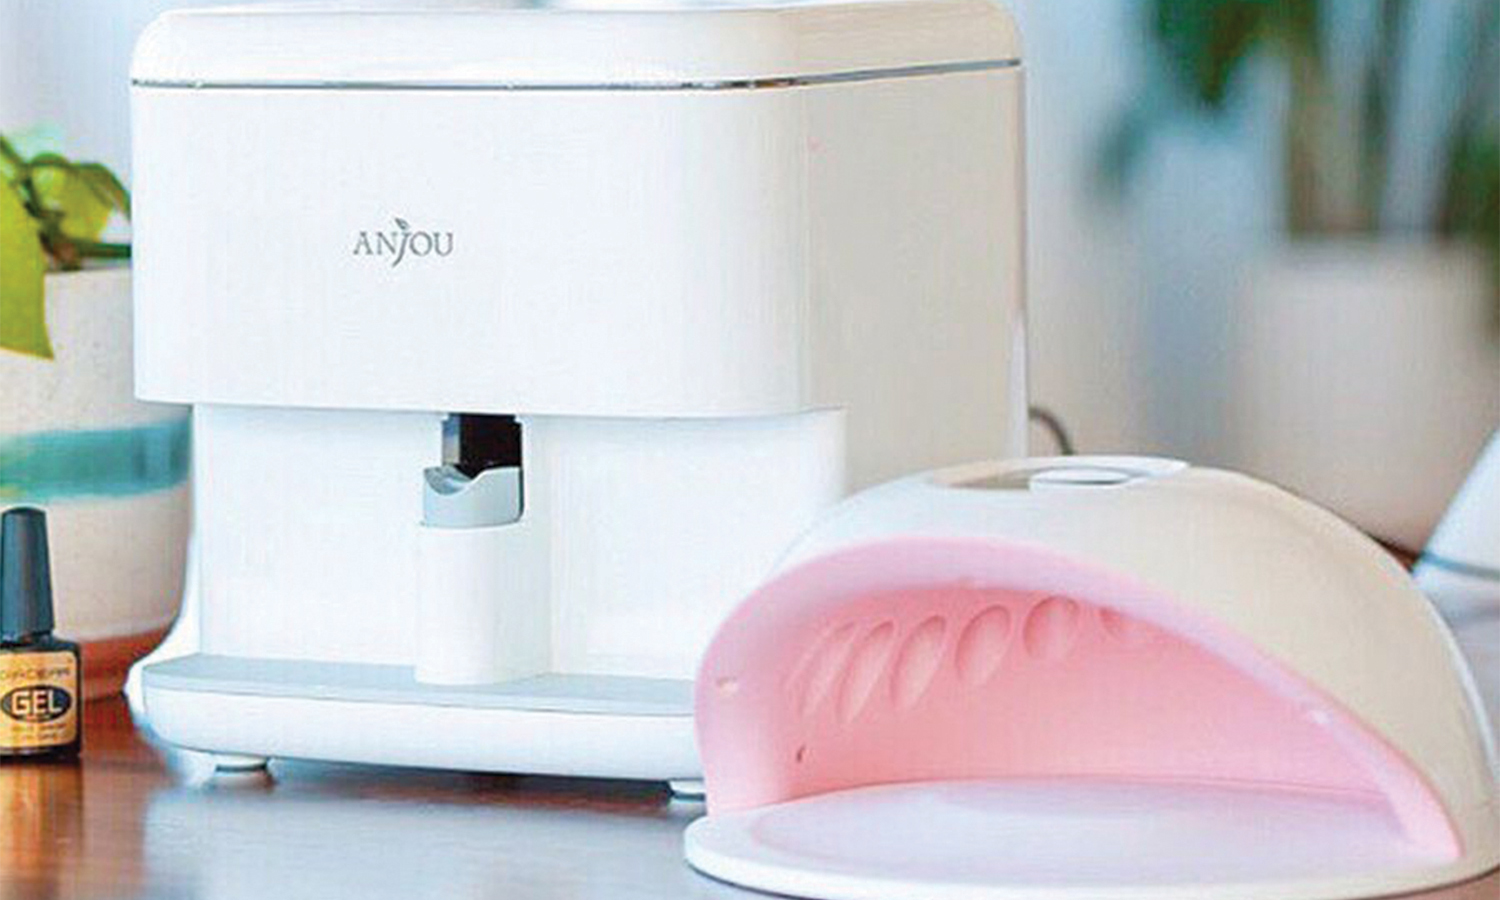 Anjou Nail Printer